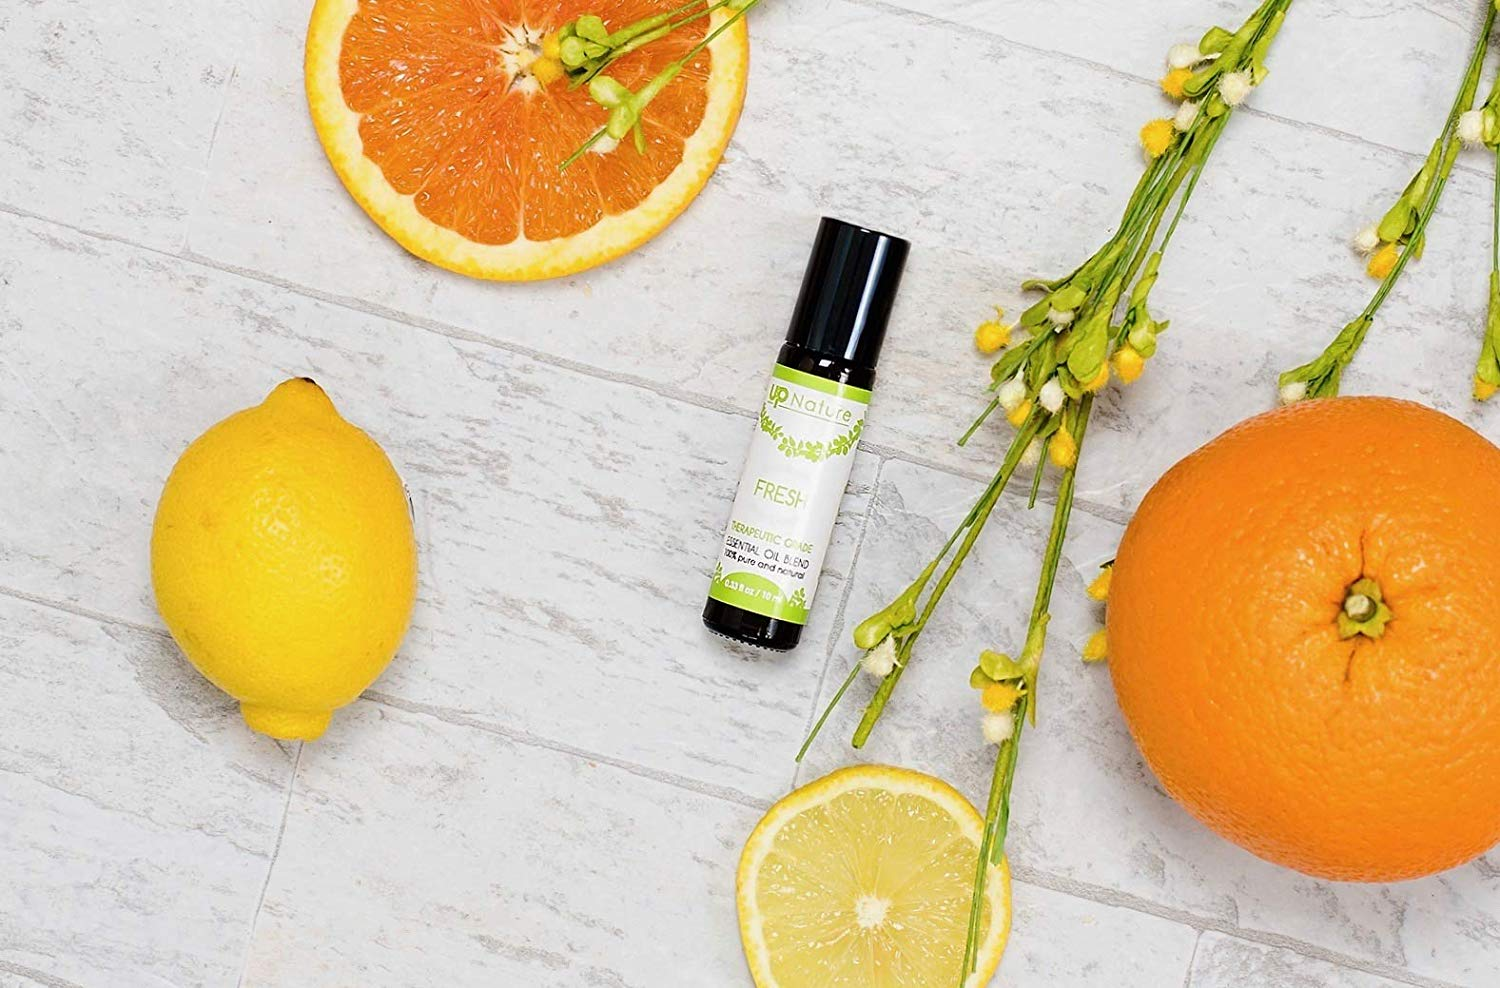 Fresh Essential Oil Roll On - Orange & Lemon Citrus Blend